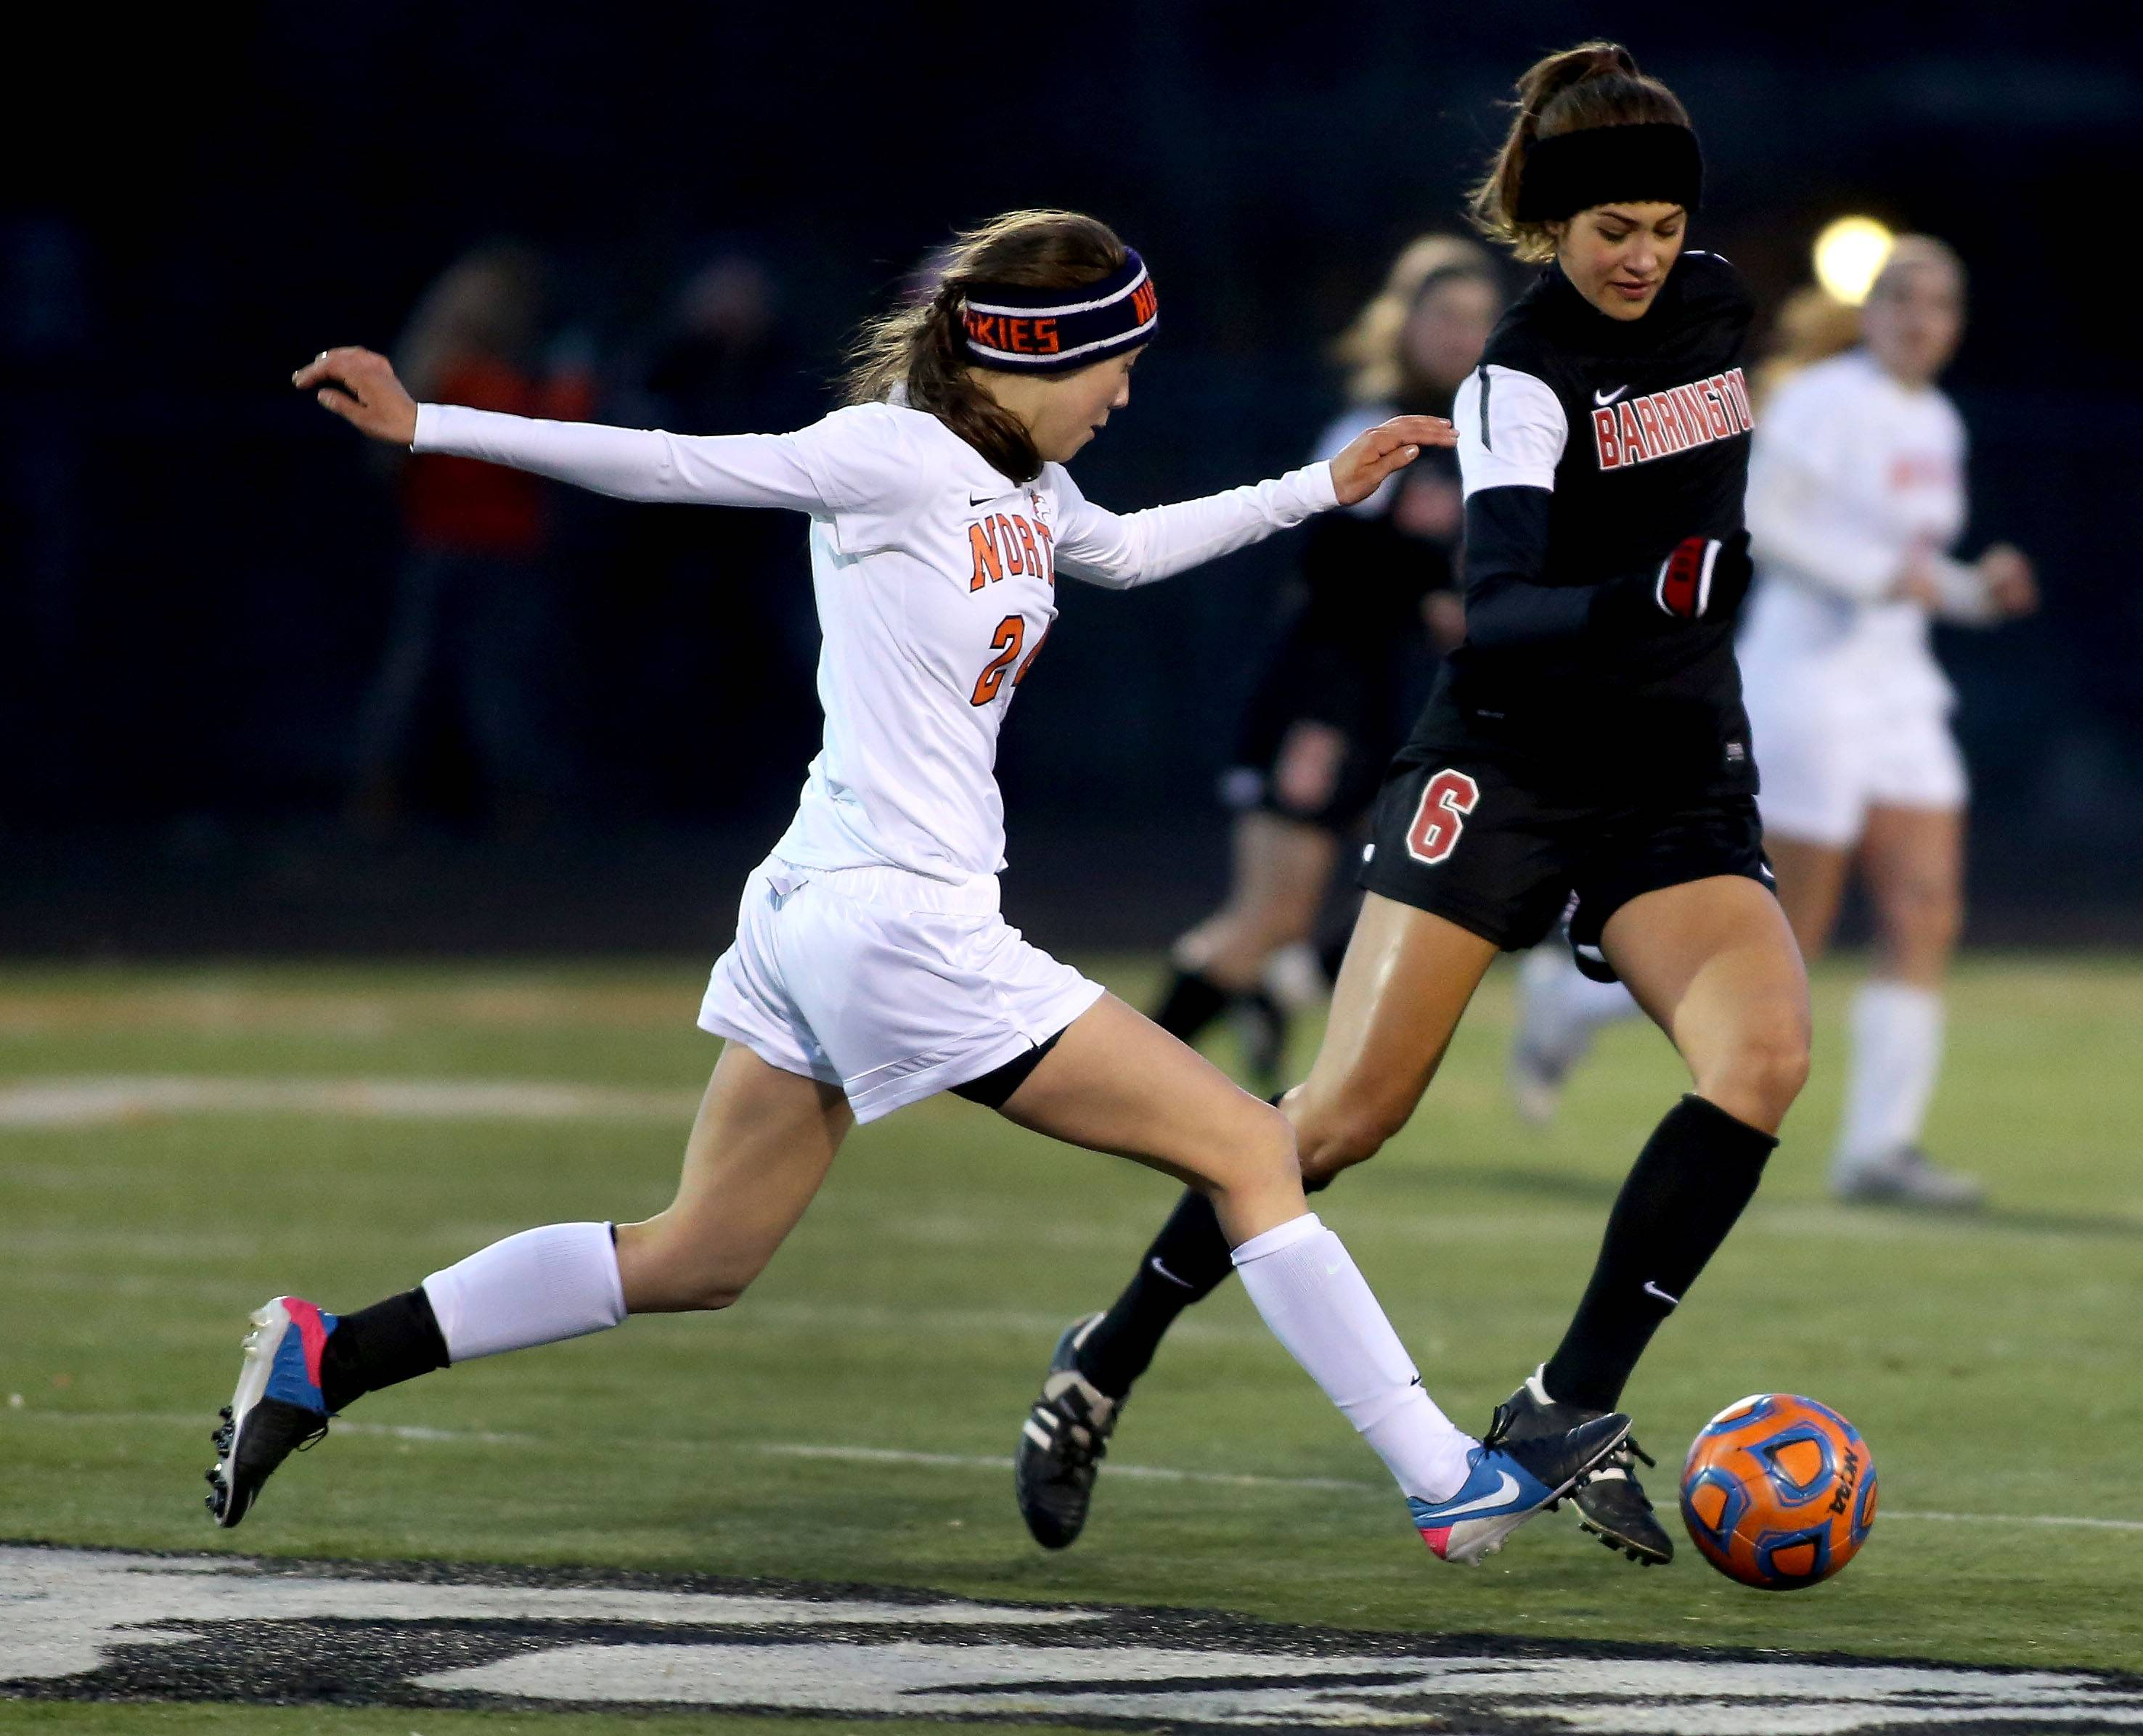 Naperville North's Allison Svoboda, left, moves in as Nicole Niro of Barrington takes control of the ball in girls soccer action on Monday in Naperville.